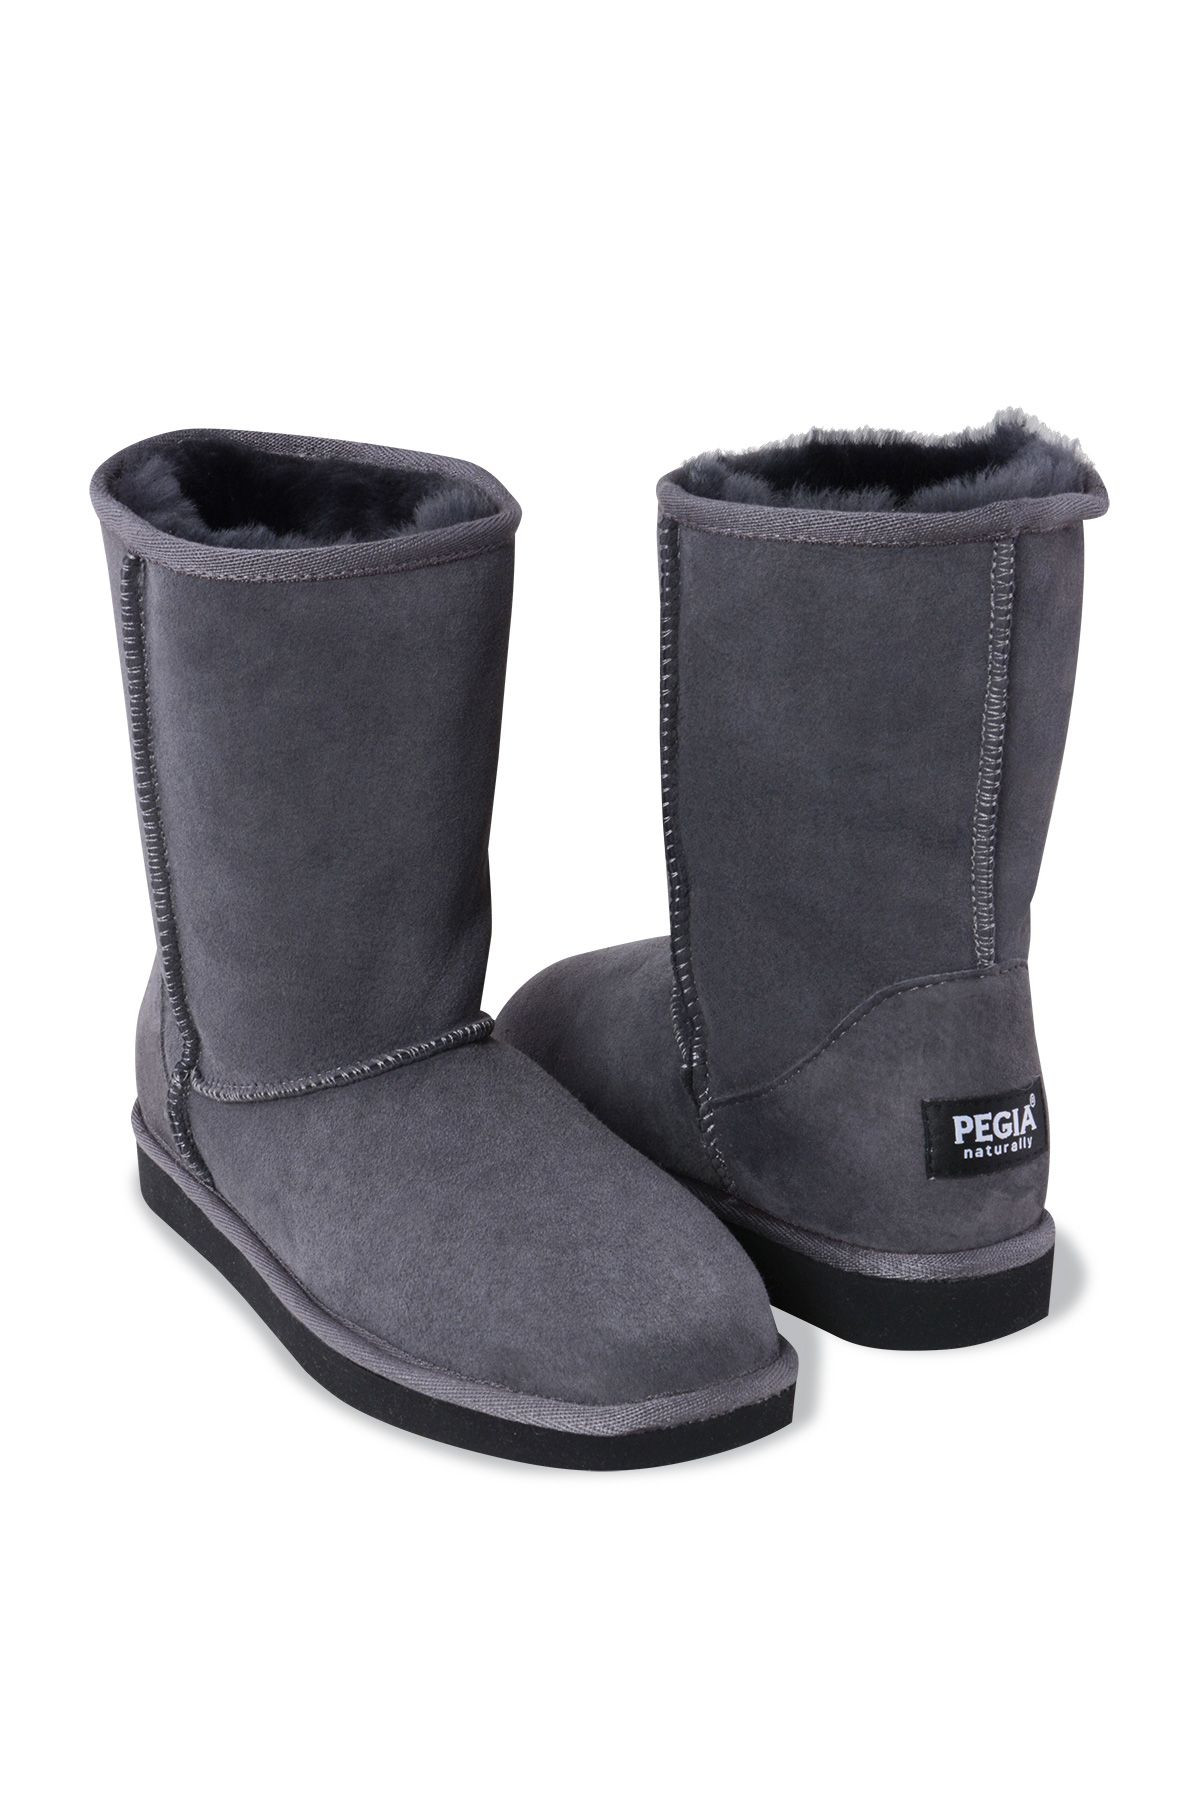 Pegia Genuine Sheepskin Classic Women's Boots 191011 Gray